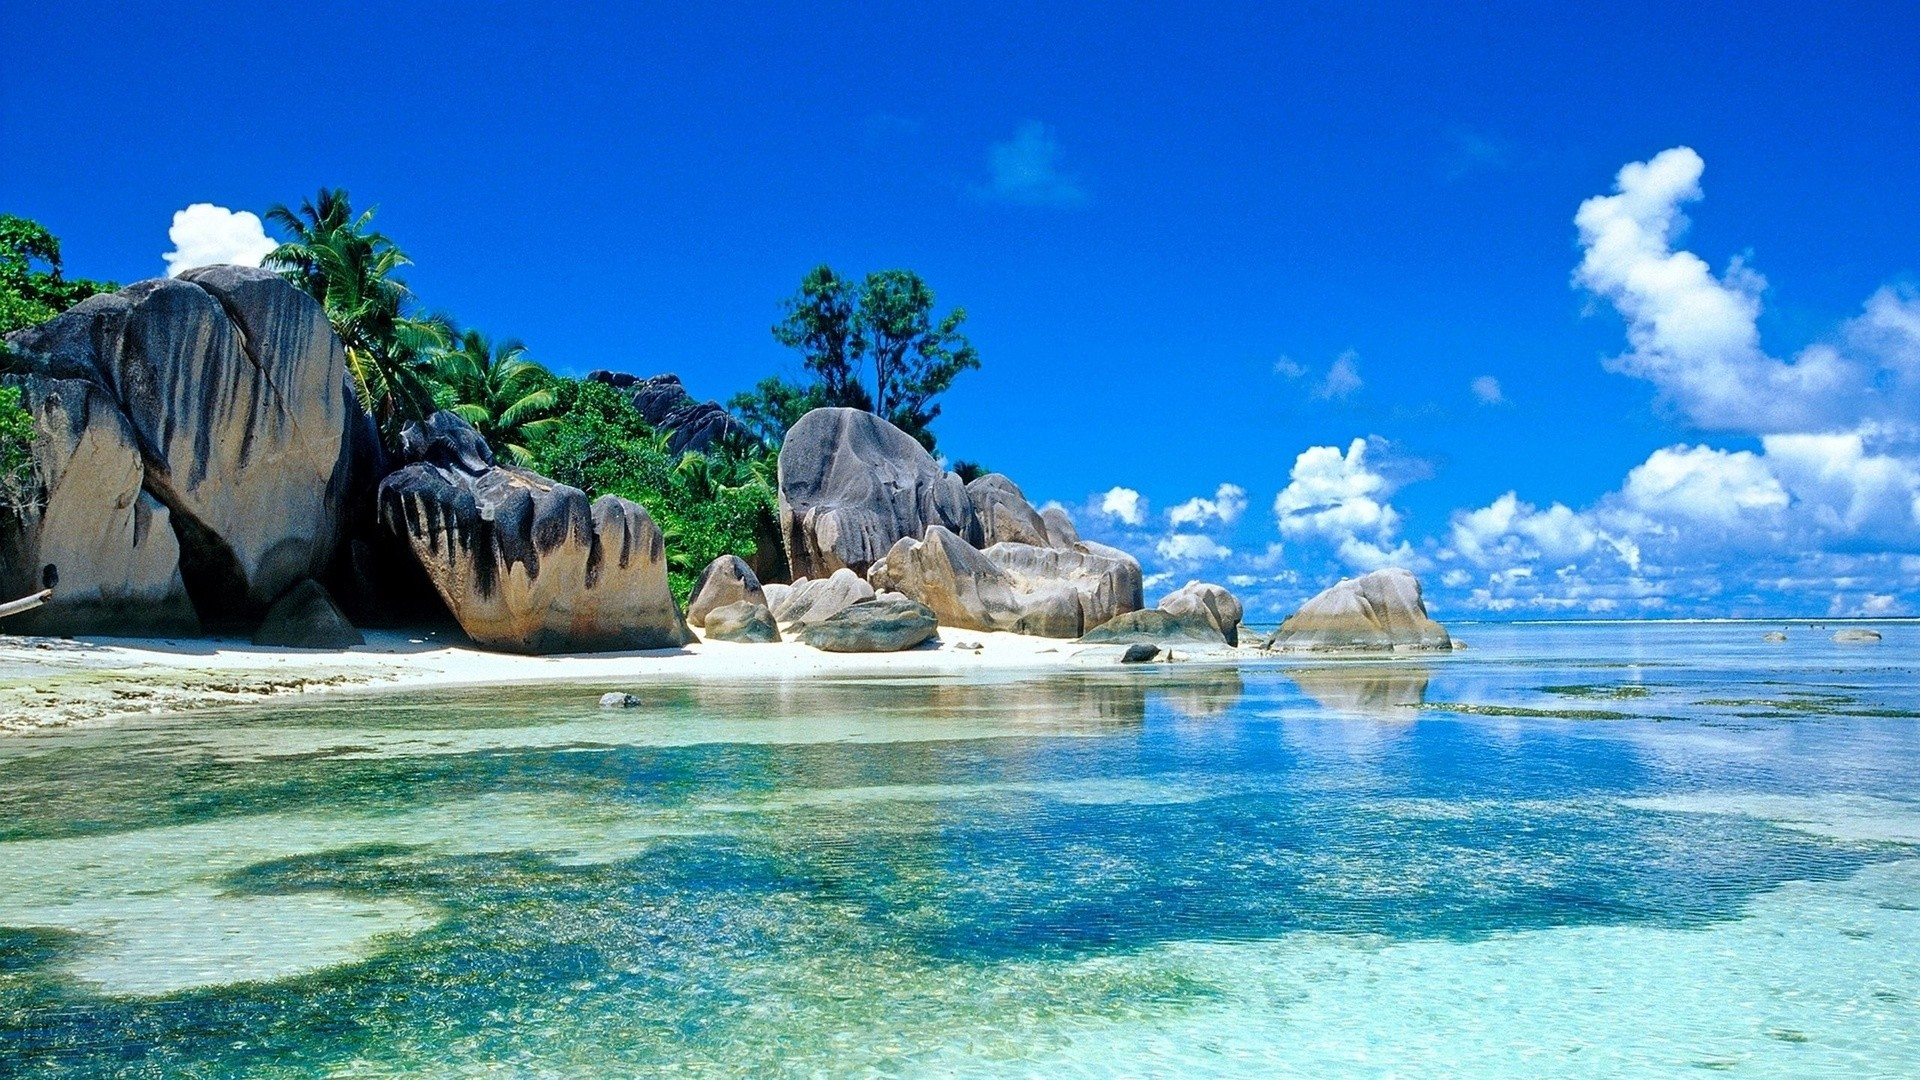 1920x1080 Free Beach Screensavers And Wallpapers Tropical Beach With Large Rocks .